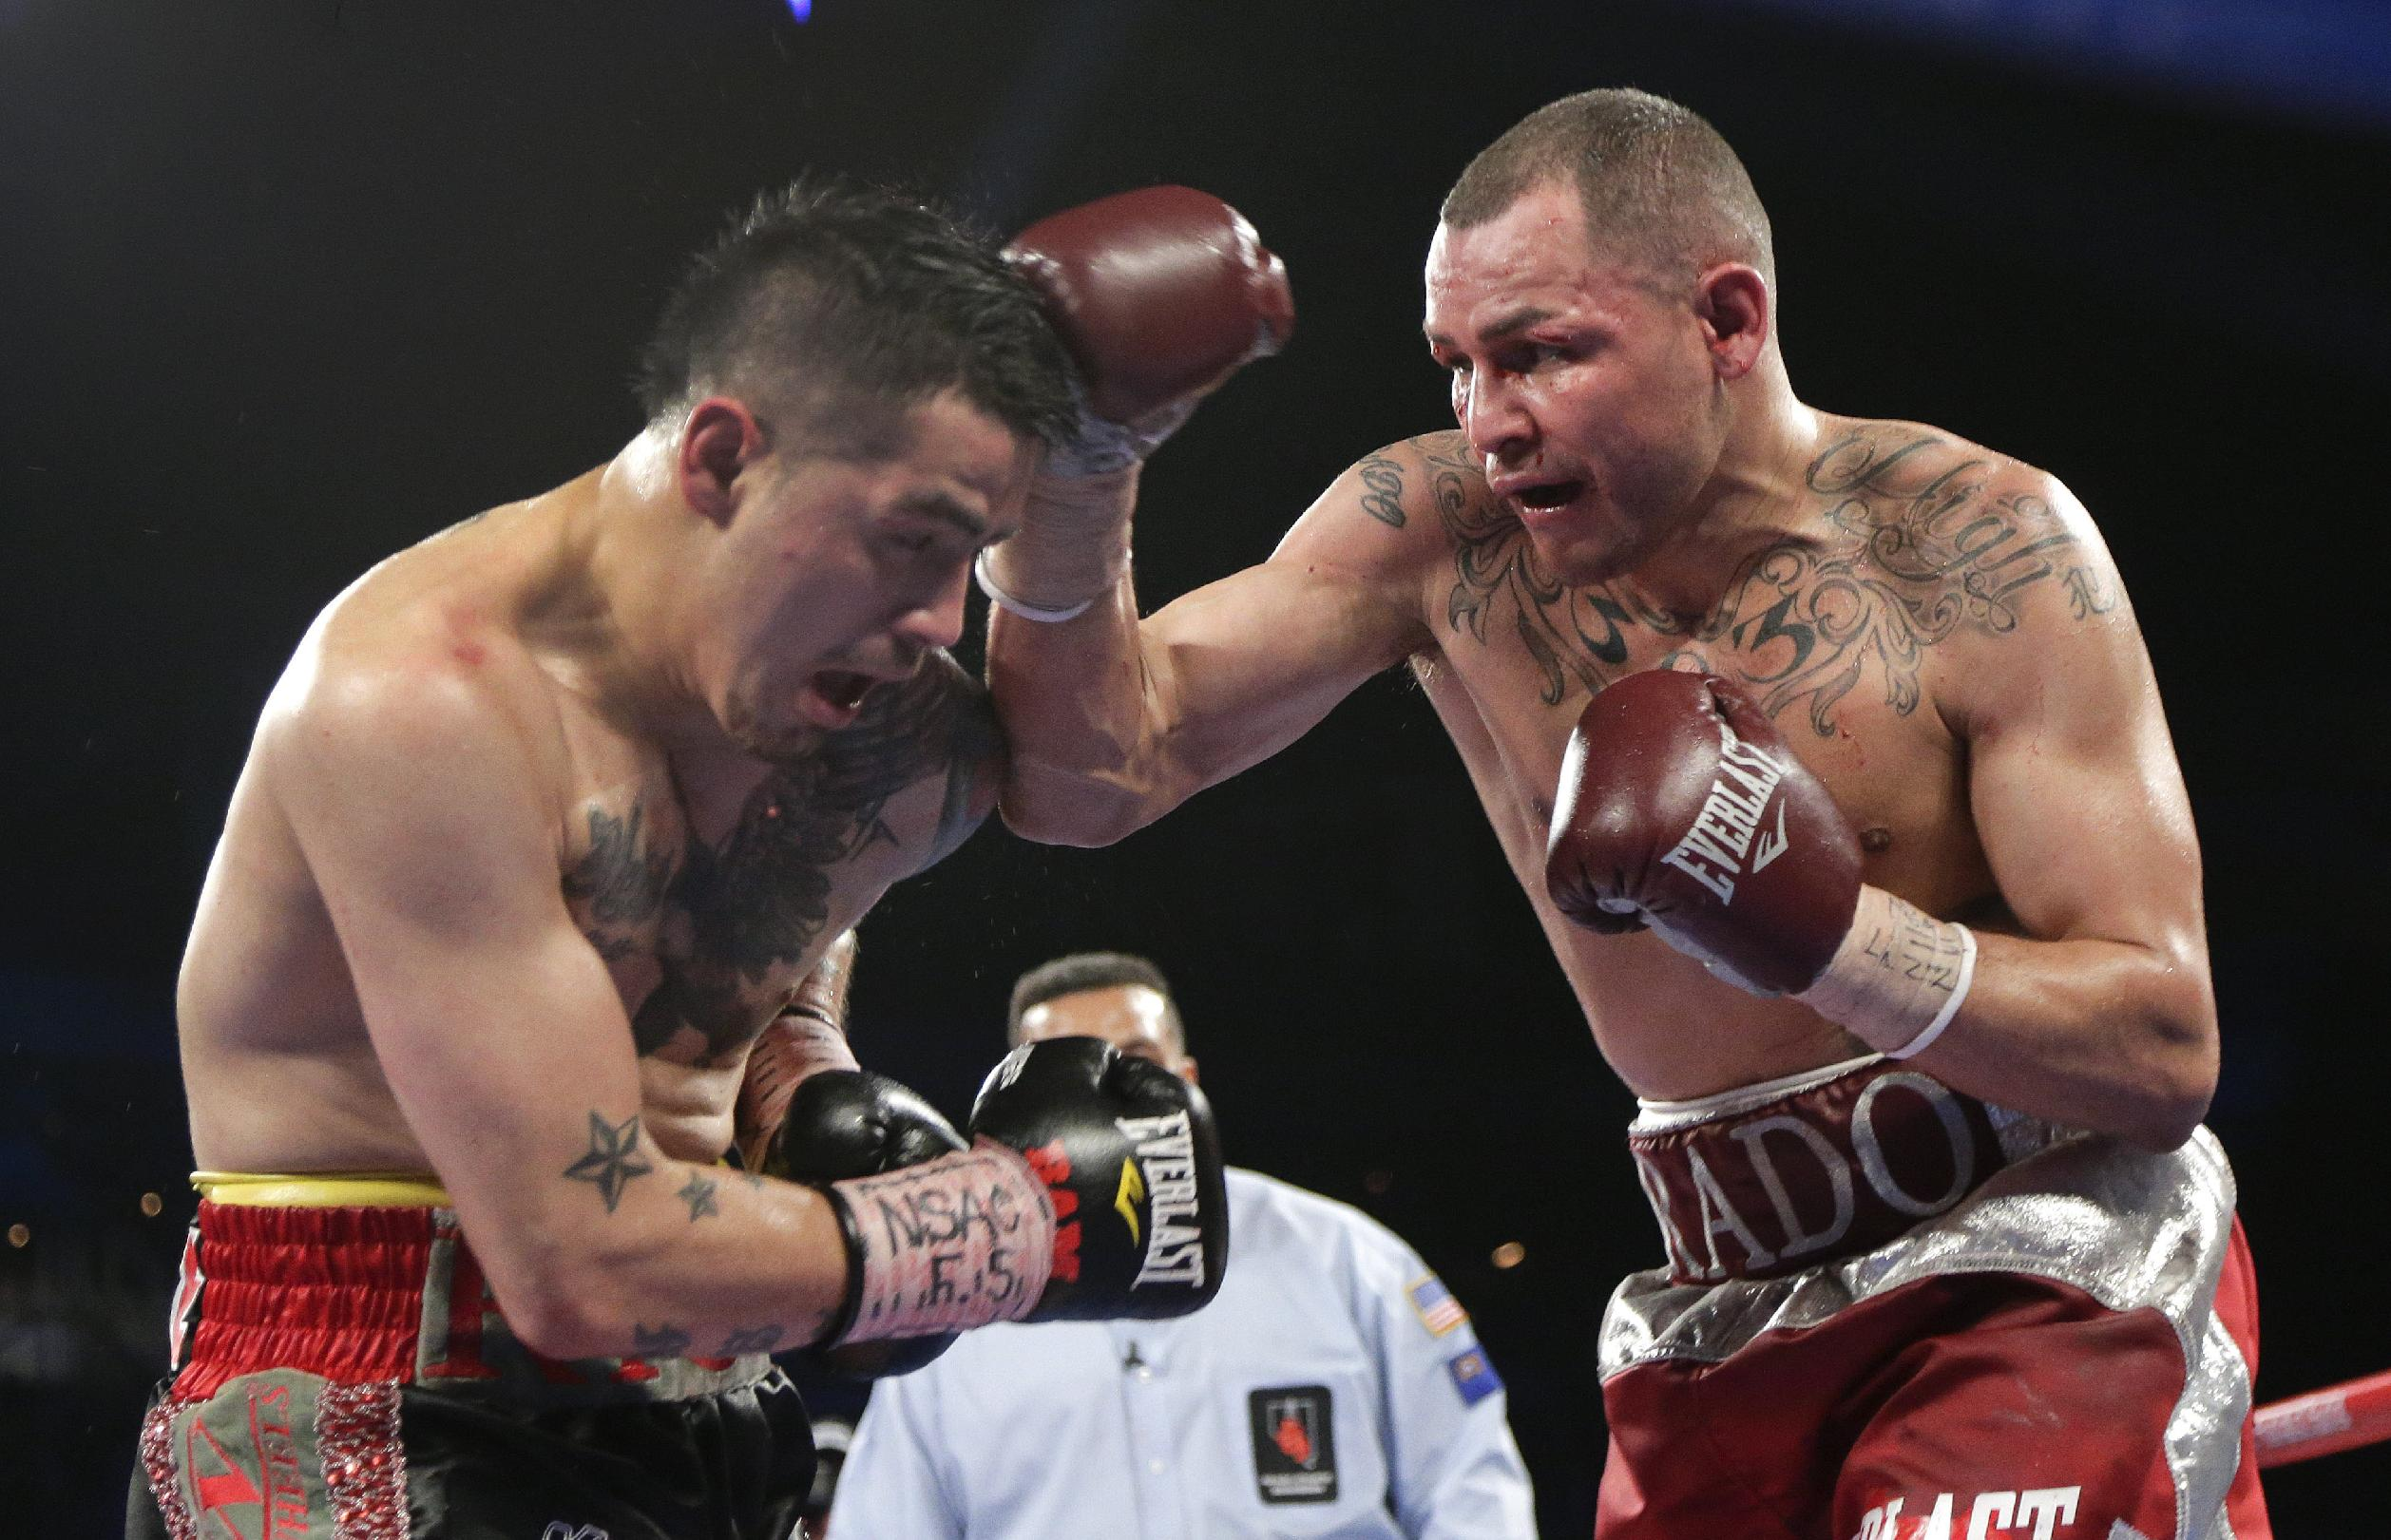 In this March 30, 2013 file photo, Mike Alvarado, right, exchanges punches with Brandon Rios during a WBO super lightweight title fight in Las Vegas. Alvadado is scheduled to fight Juan Manuel Marquez at the Forum in Inglewood, Calif., on Saturday, May 17